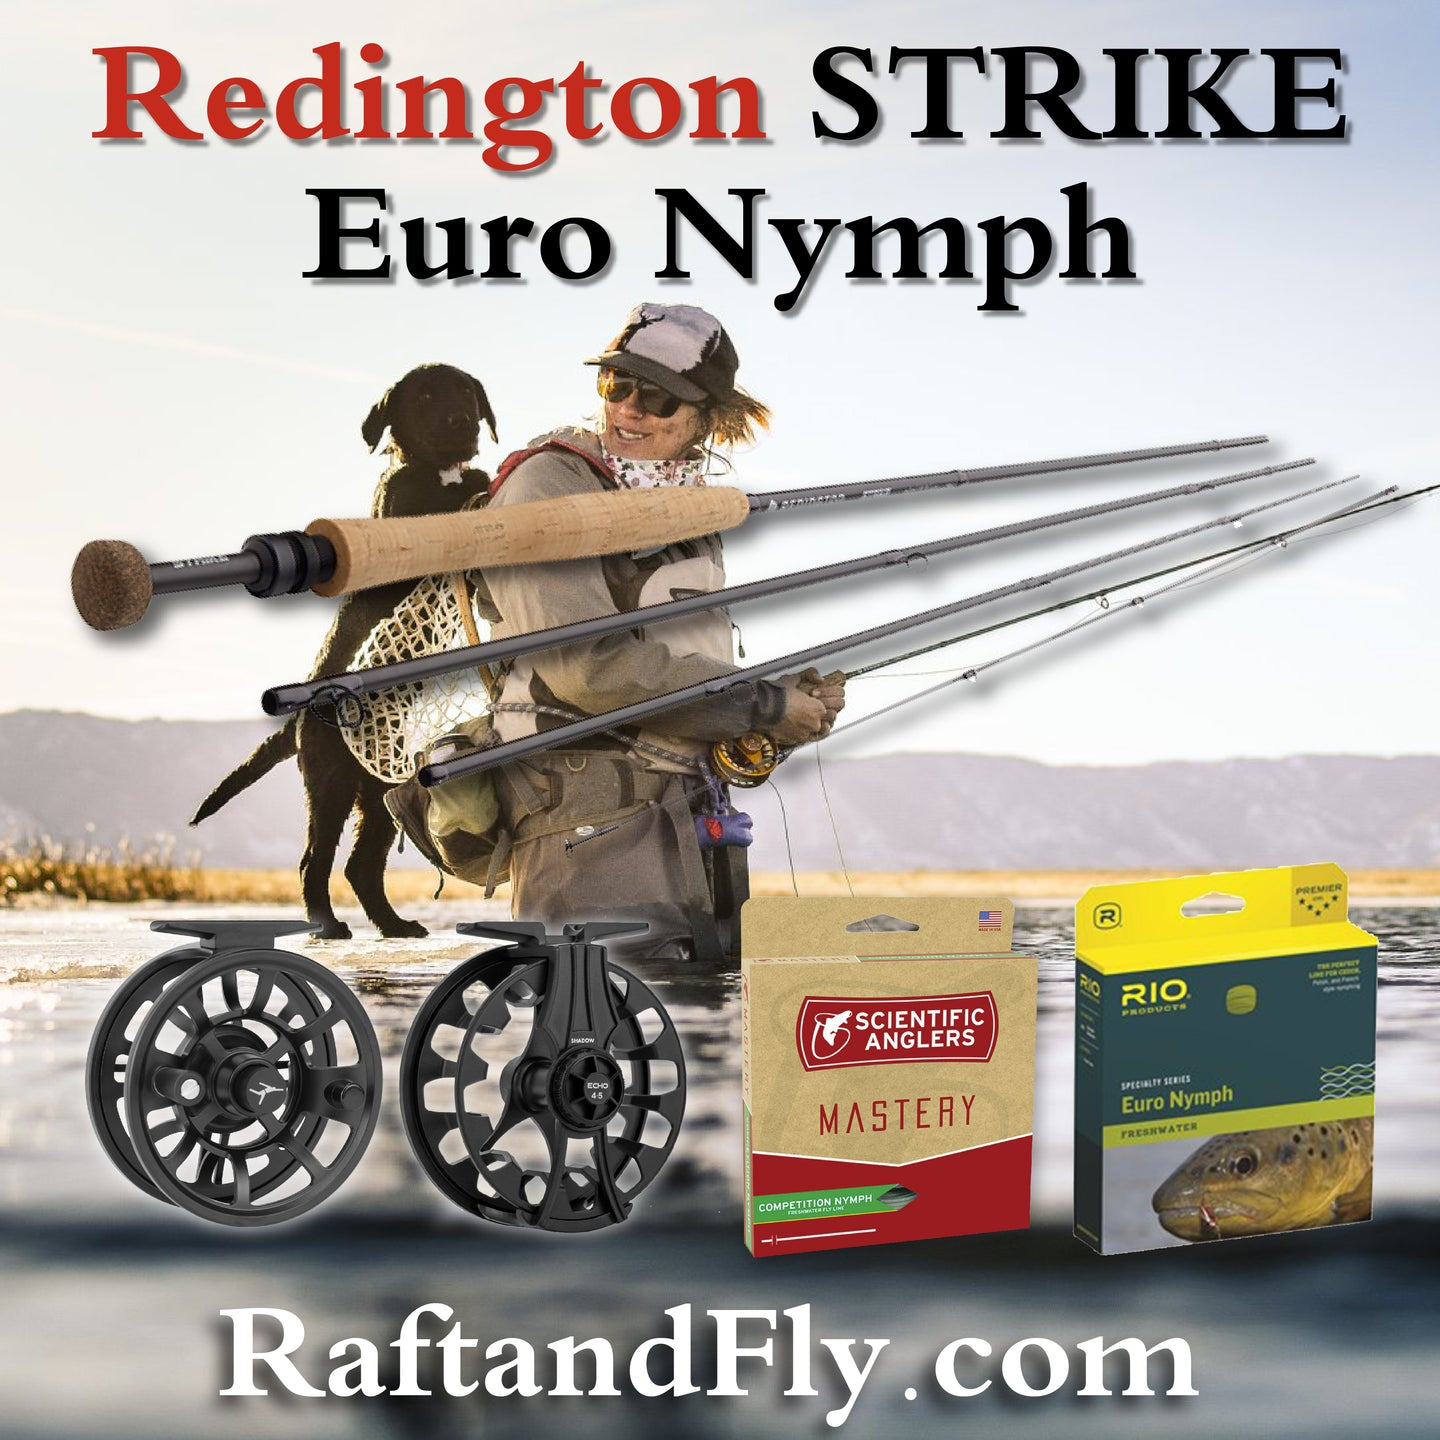 Redington Strike Euro Nymph 10'6